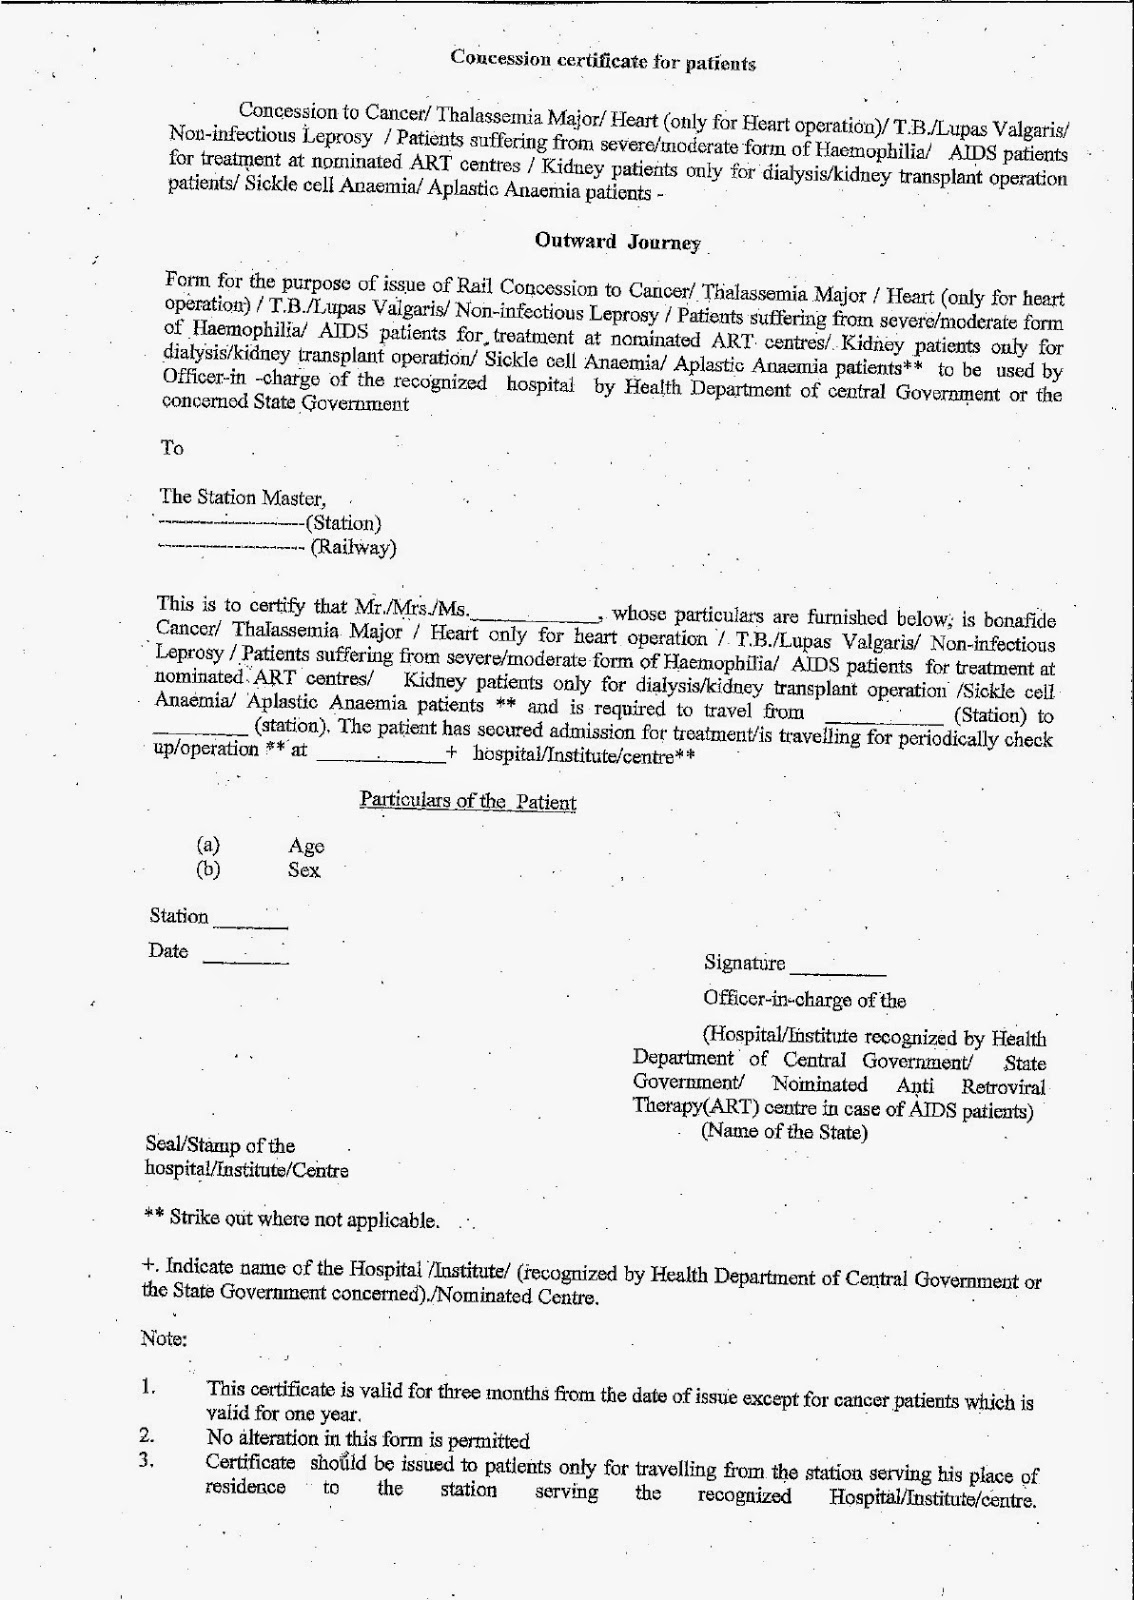 revised railway concession certificate forms for all the